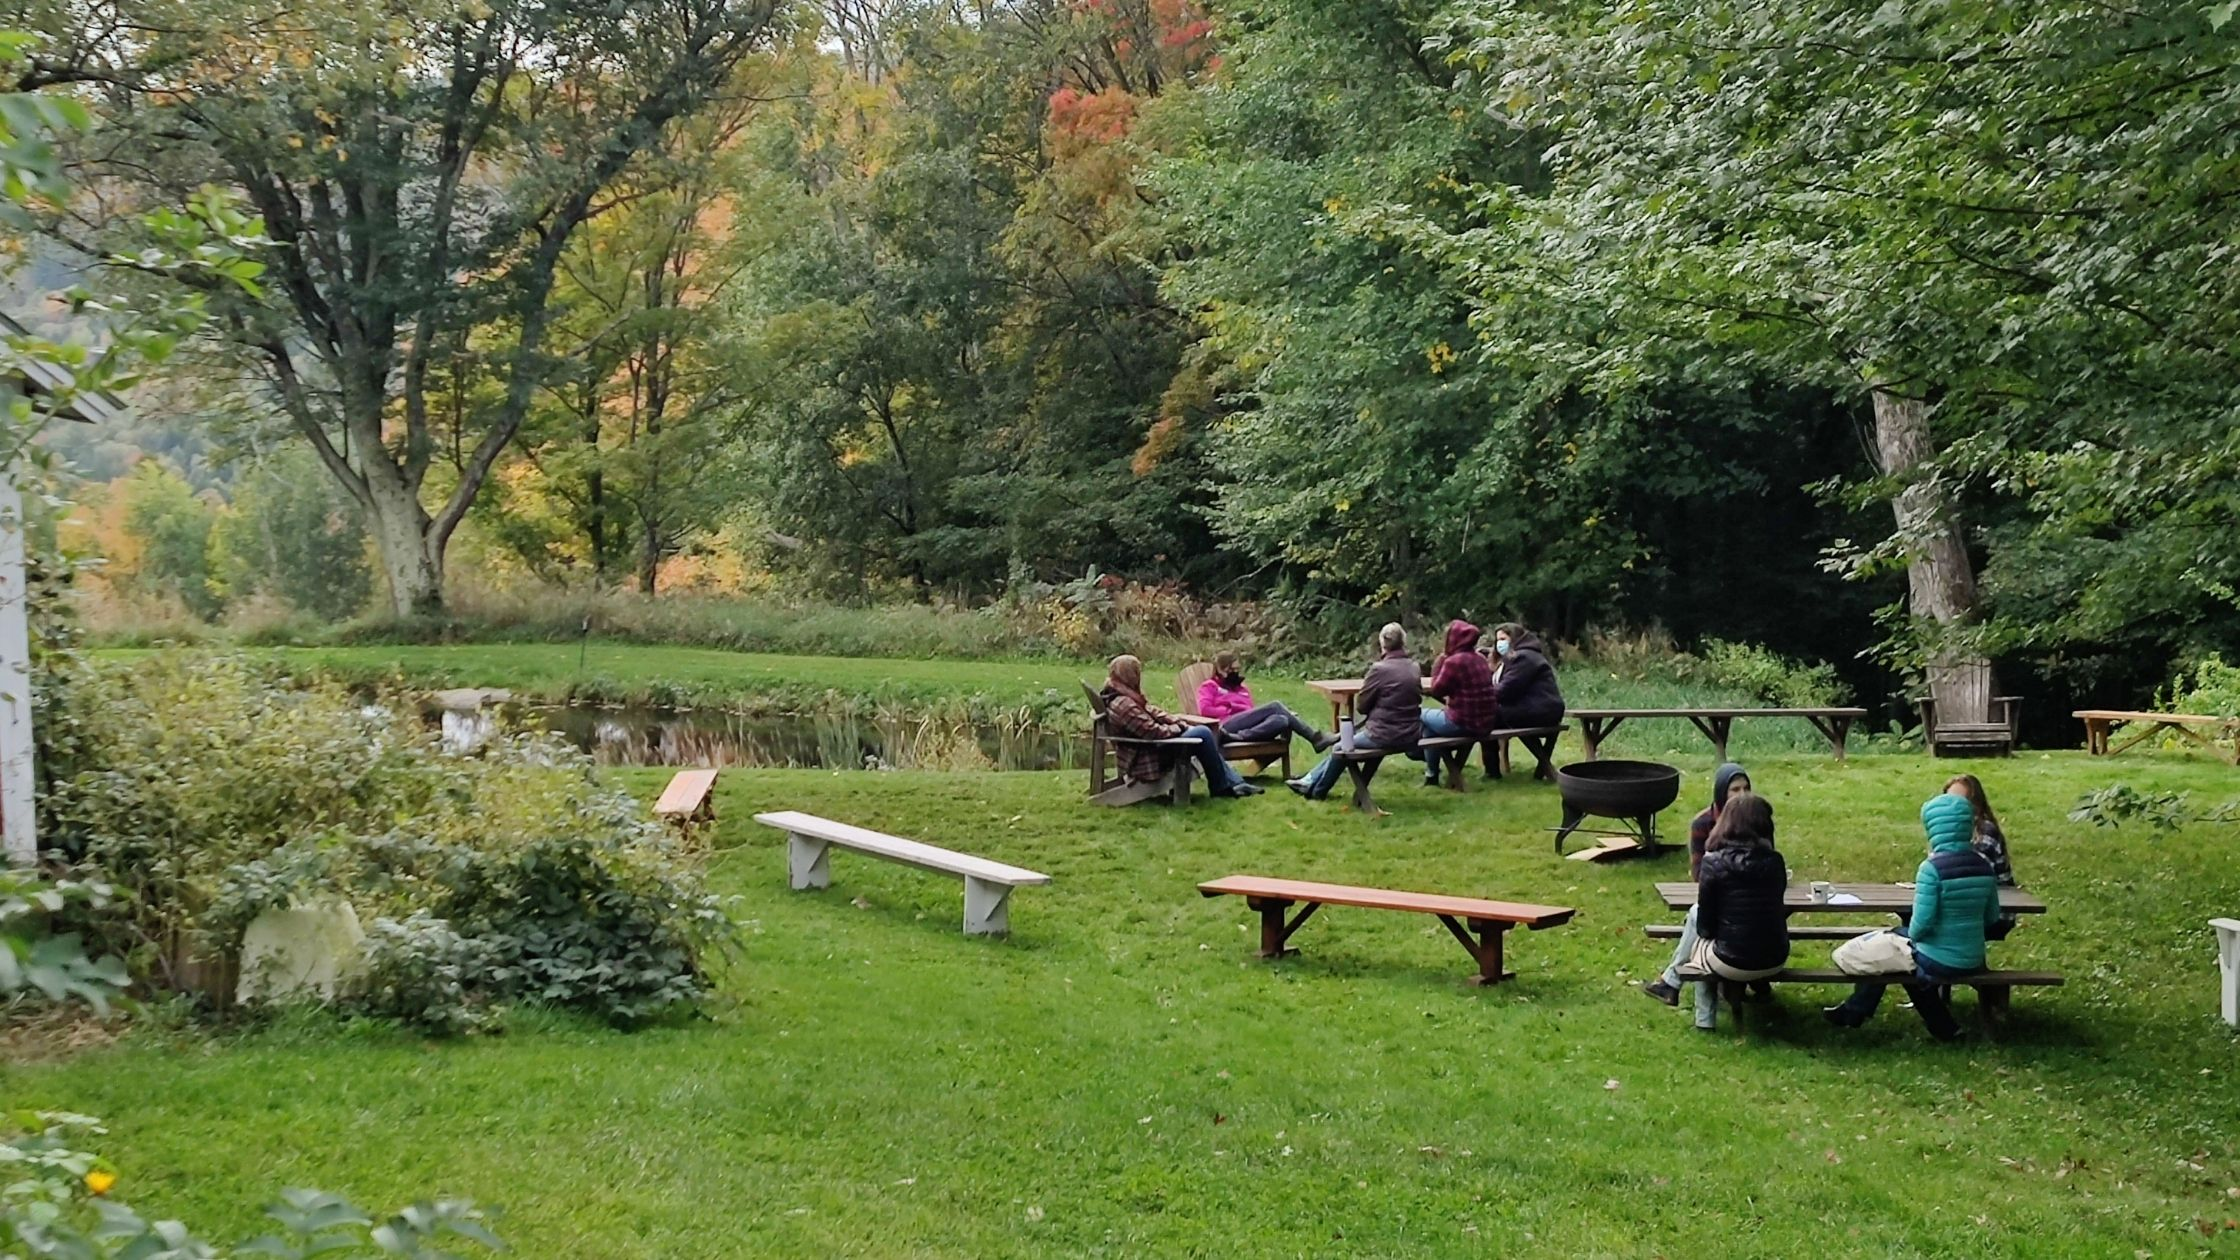 retreat attendees gathering on the lawn